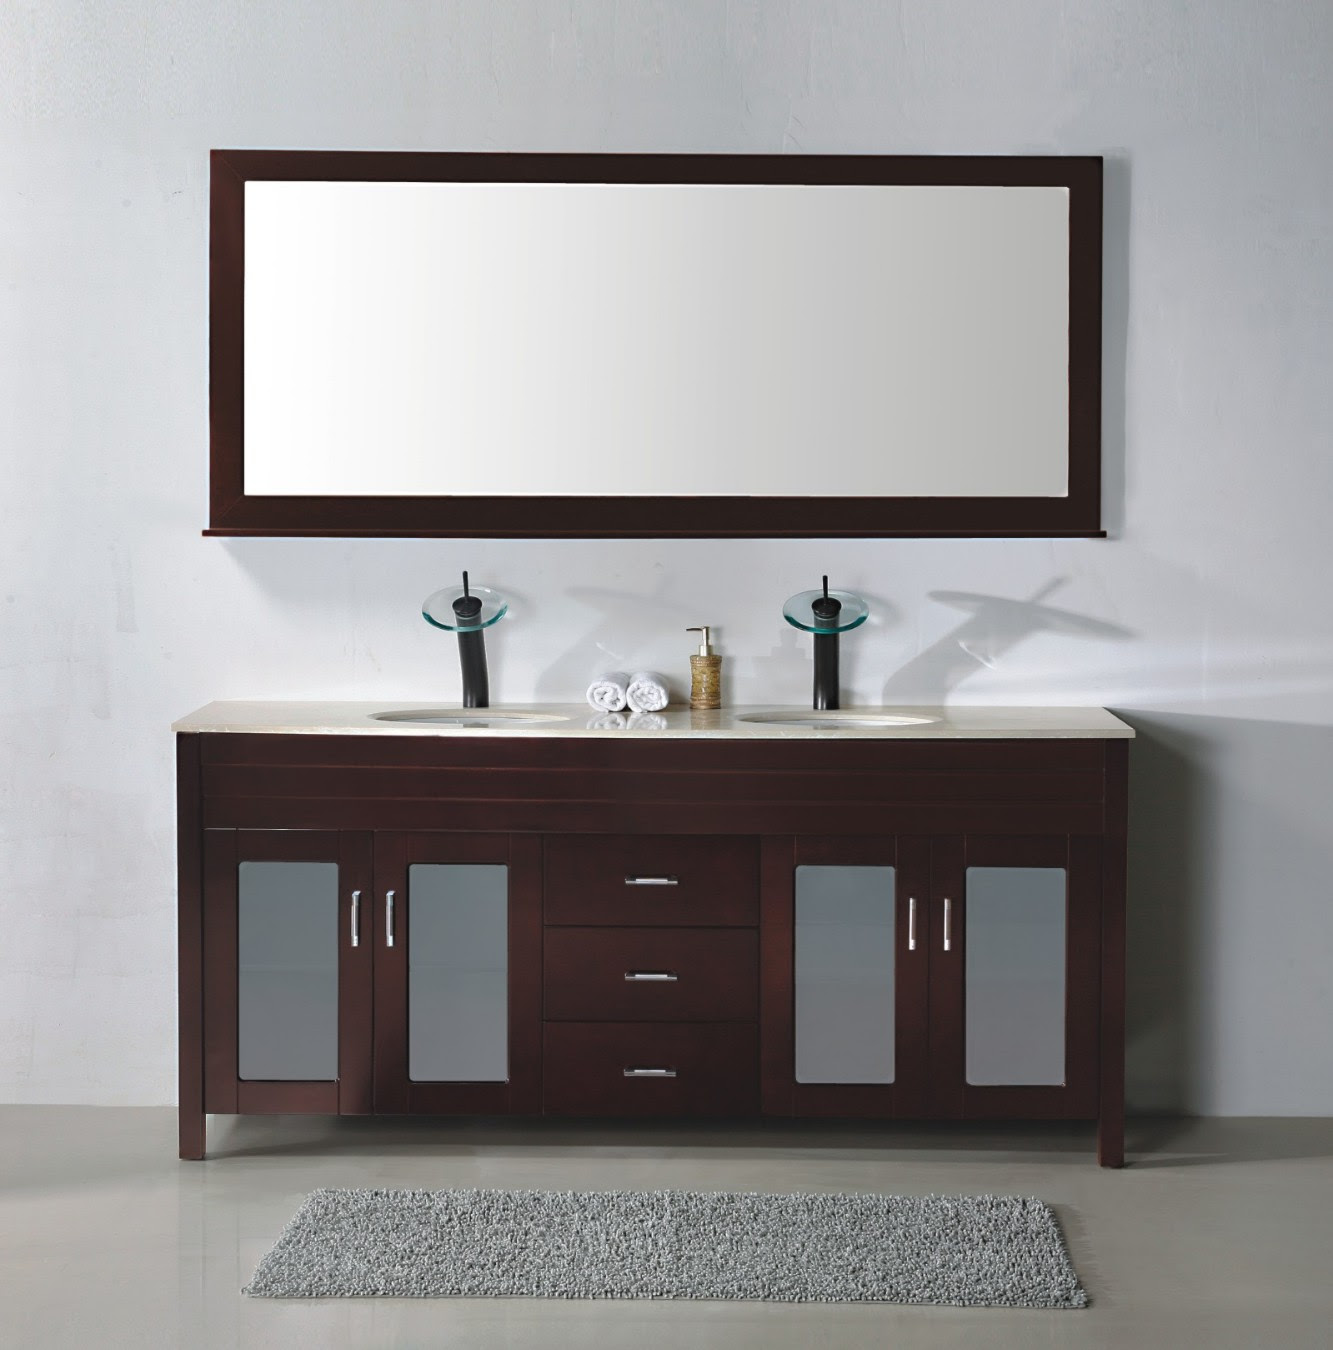 Images of Bathroom Vanities that Will Make You Fall in ...